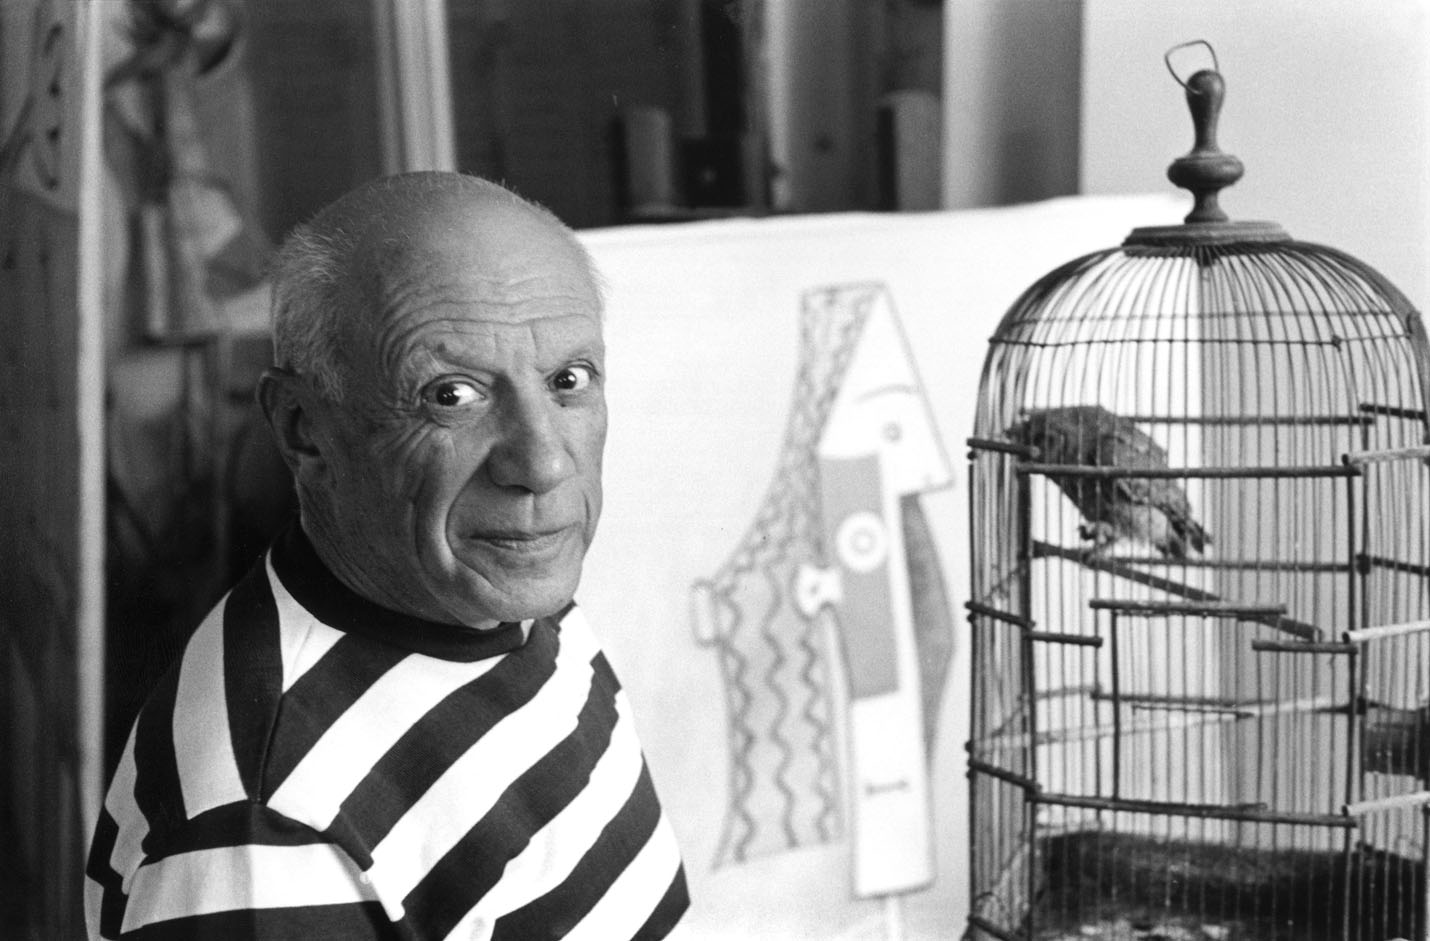 Picasso.jpg (1430×941)